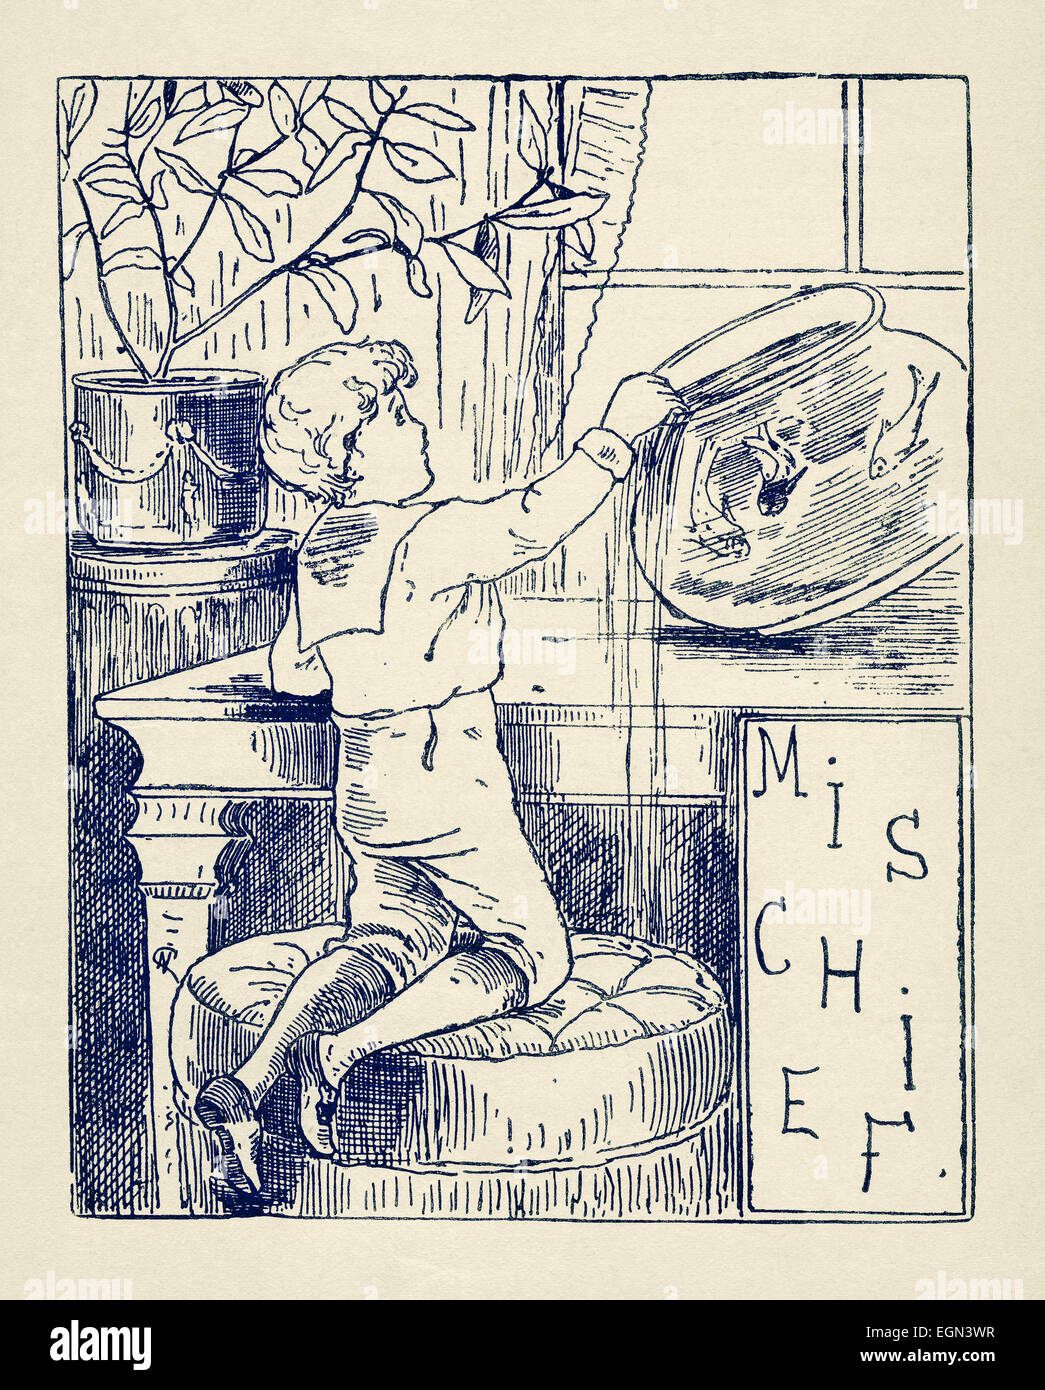 Victorian book illustration of of 1877 showing a boy up to 'mischief', tipping over a goldfish bowl - Stock Image